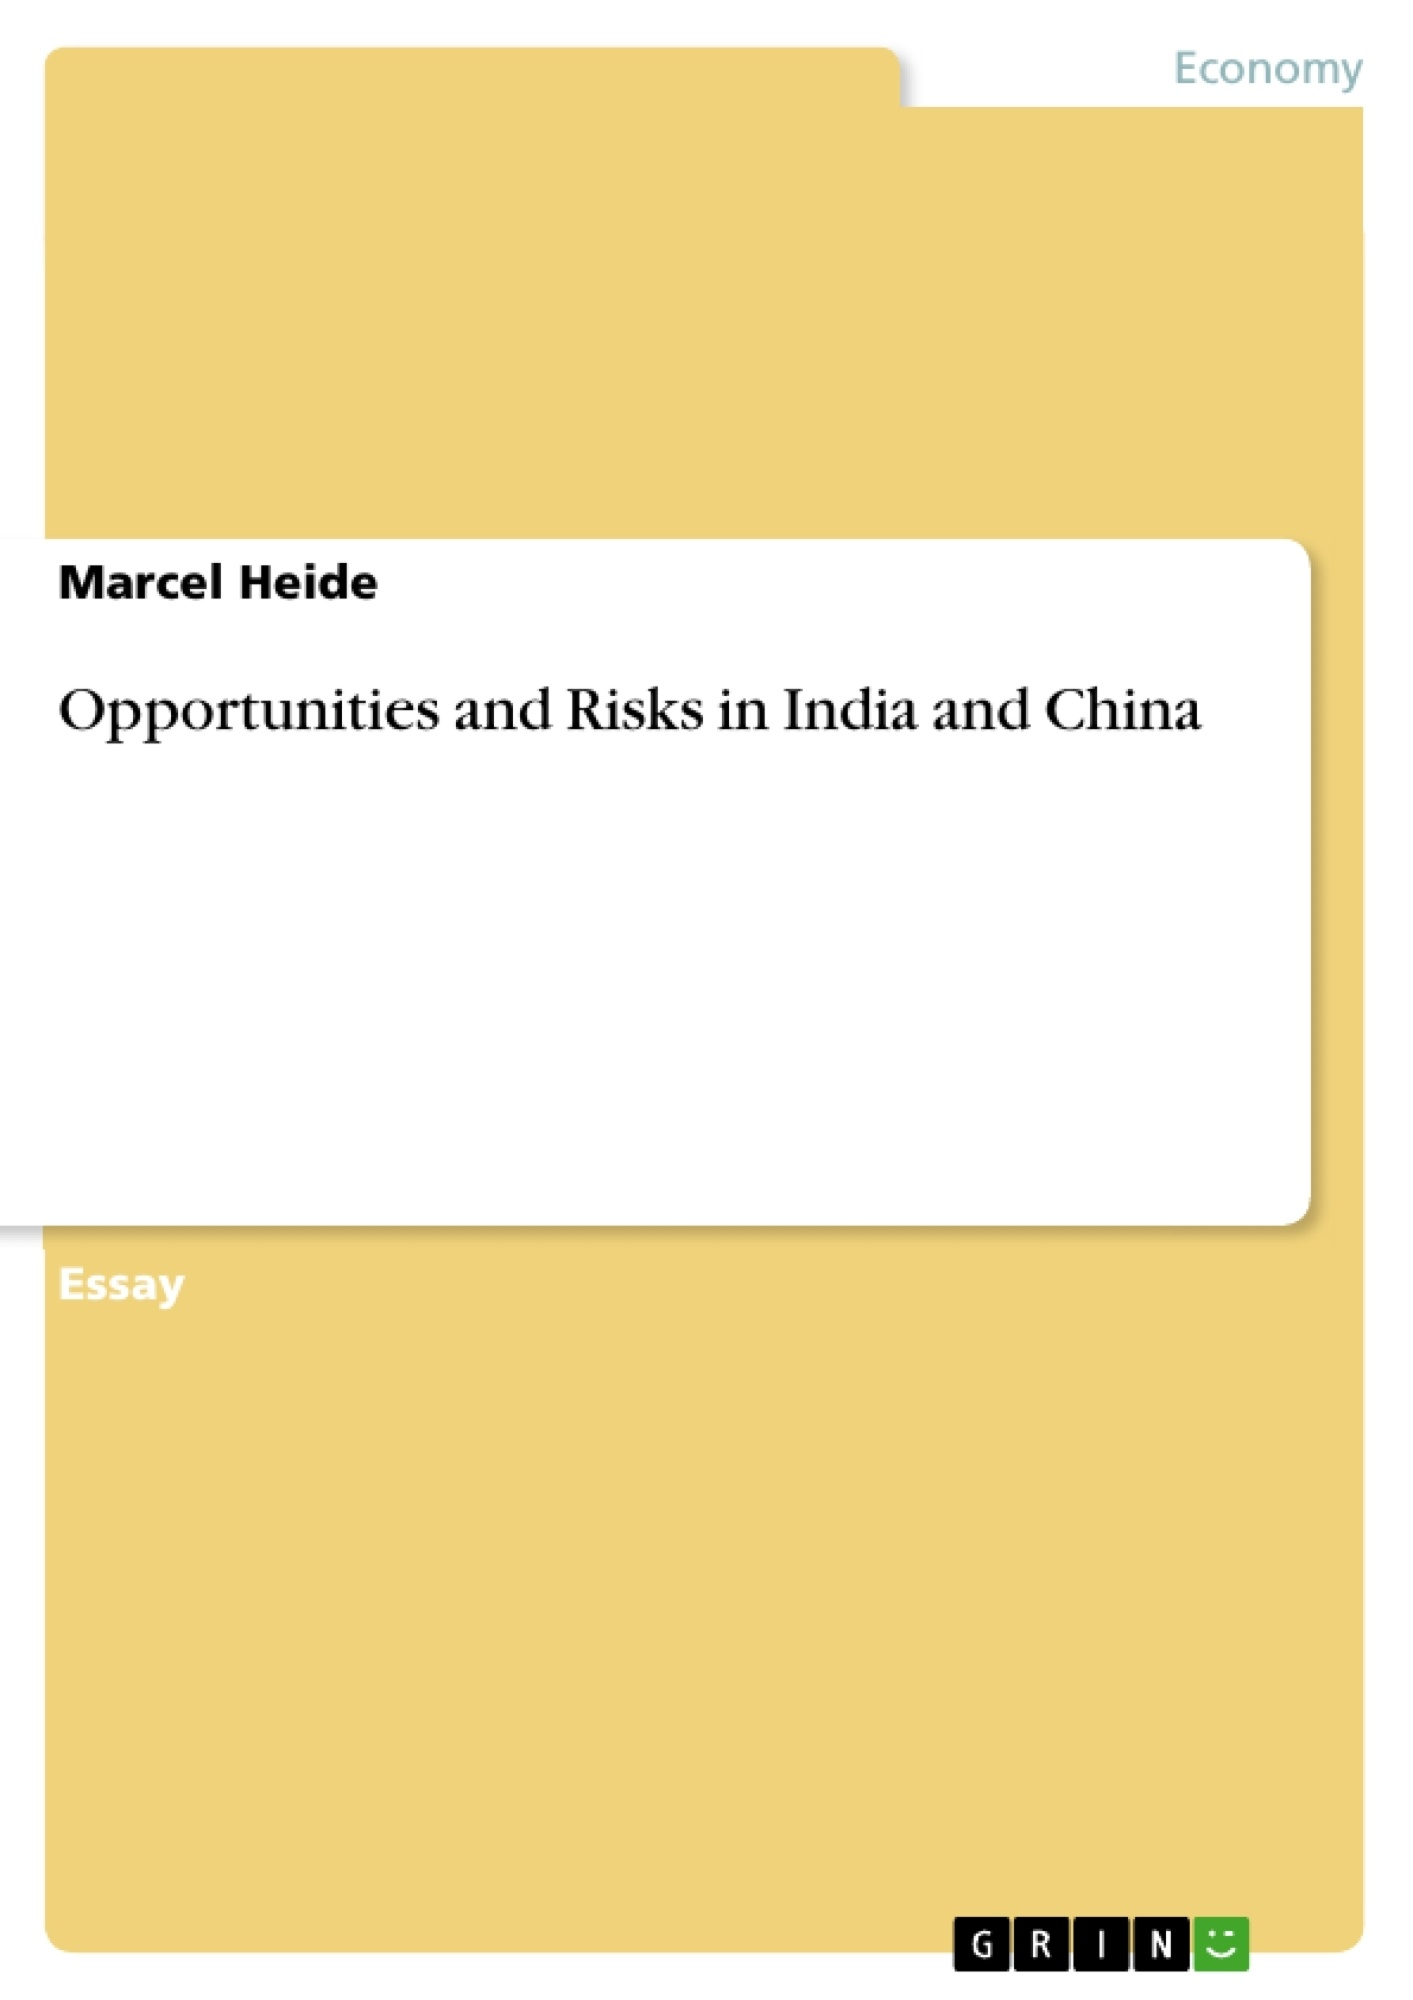 Title: Opportunities and Risks in India and China